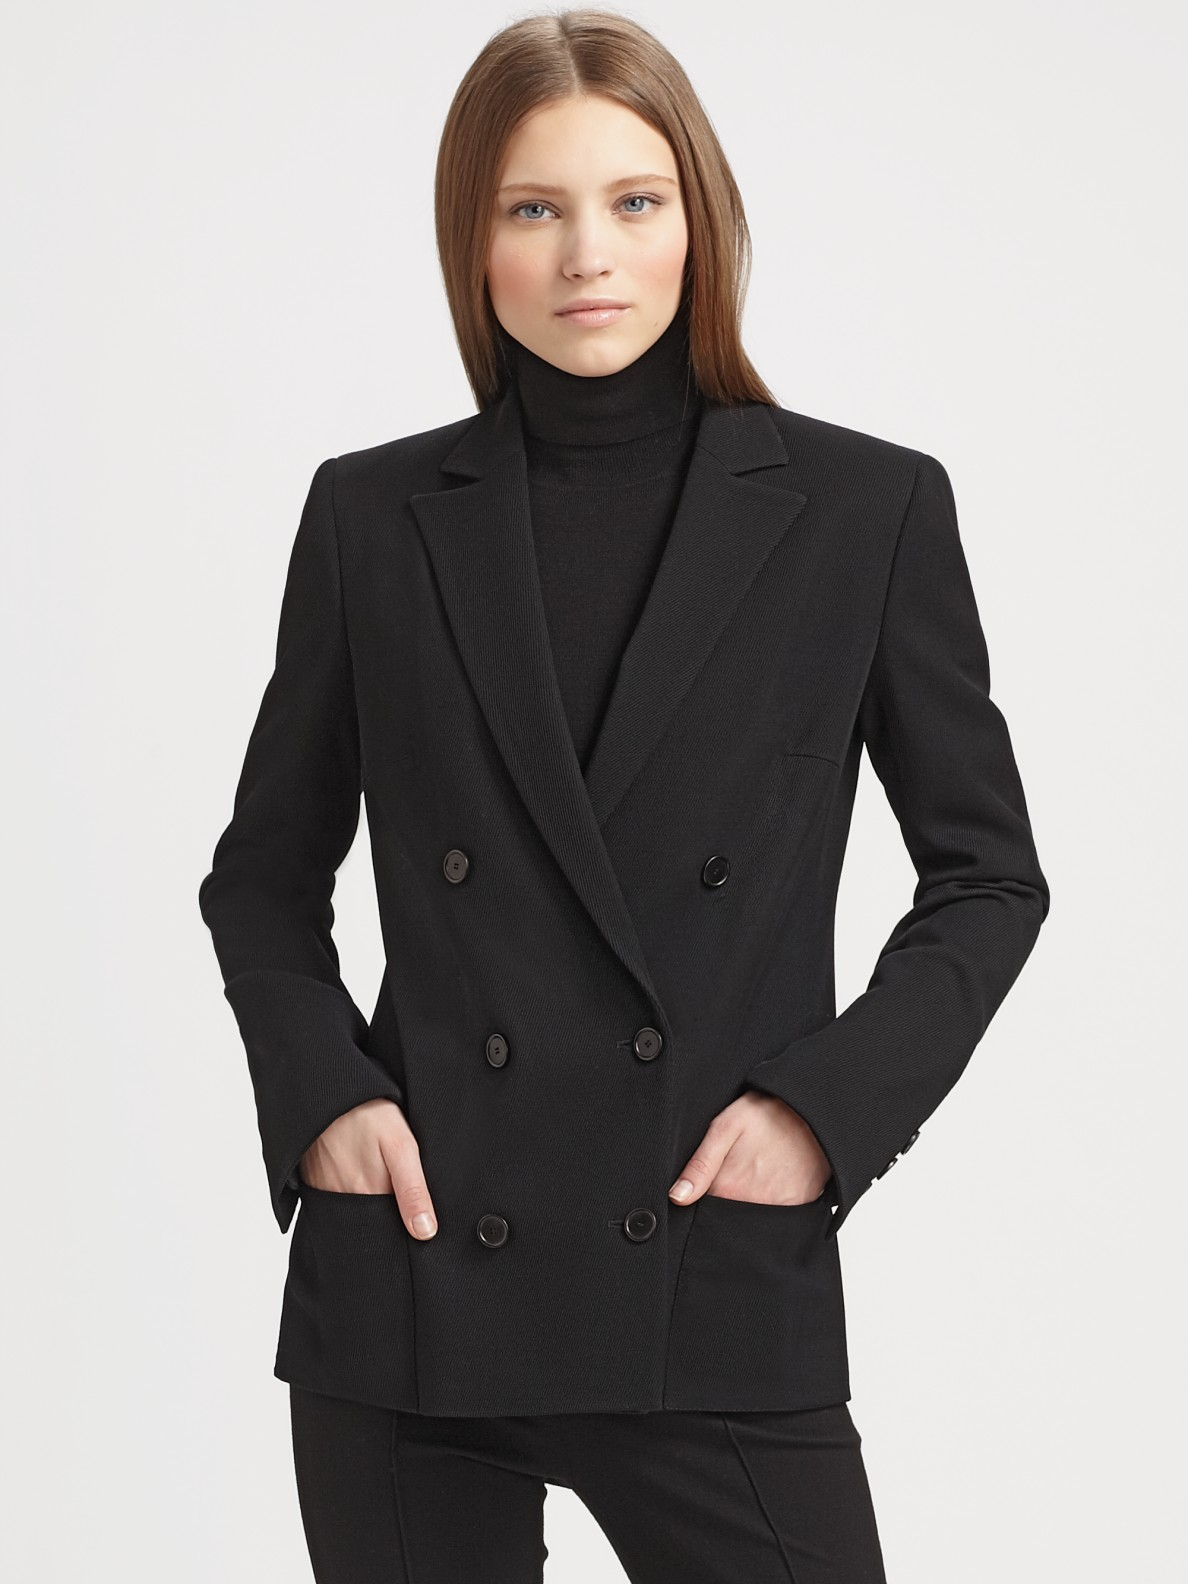 Add a boyfriend jacket for women to any casual wardrobe for a stylish look that is sleek and sophisticated with a laidback, relaxed twist. Available in an array of colors and prints, this women's jacket is designed to add a stunning touch of elegance and grace to any casual fashion ensemble while offering a layer of protection against the cold.